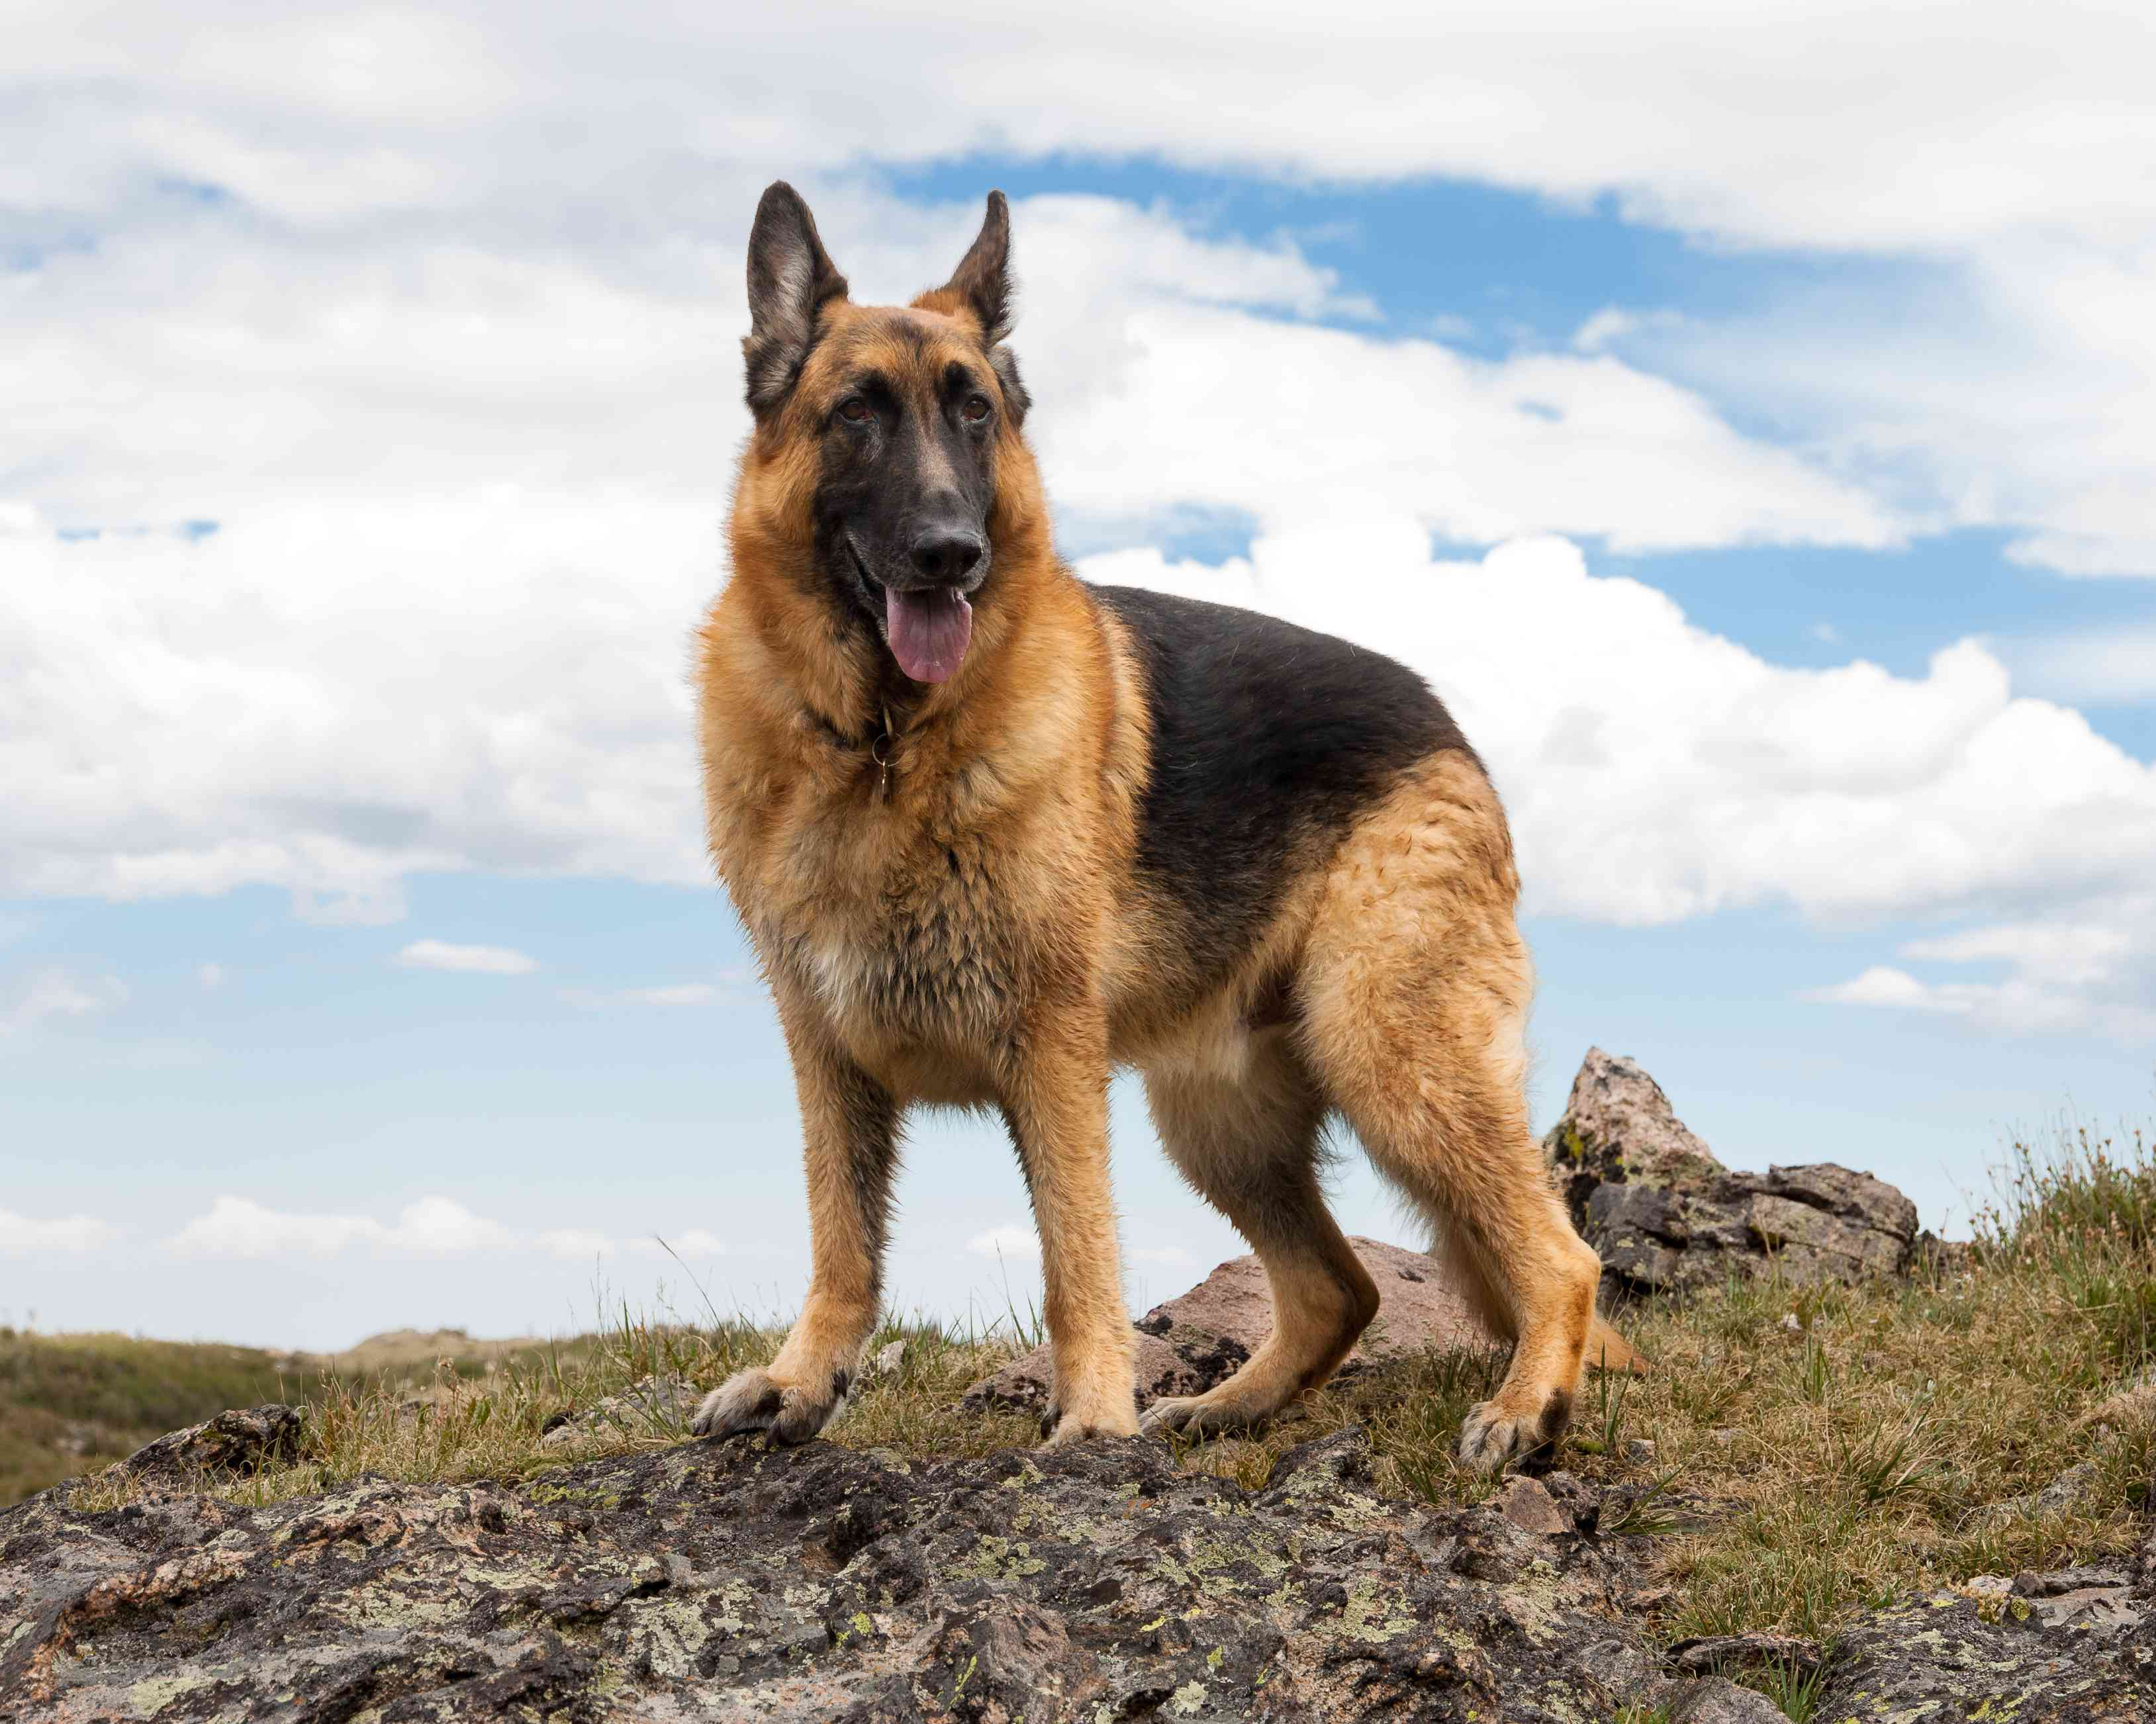 German shepherd standing on rocks with blue sky and clouds background